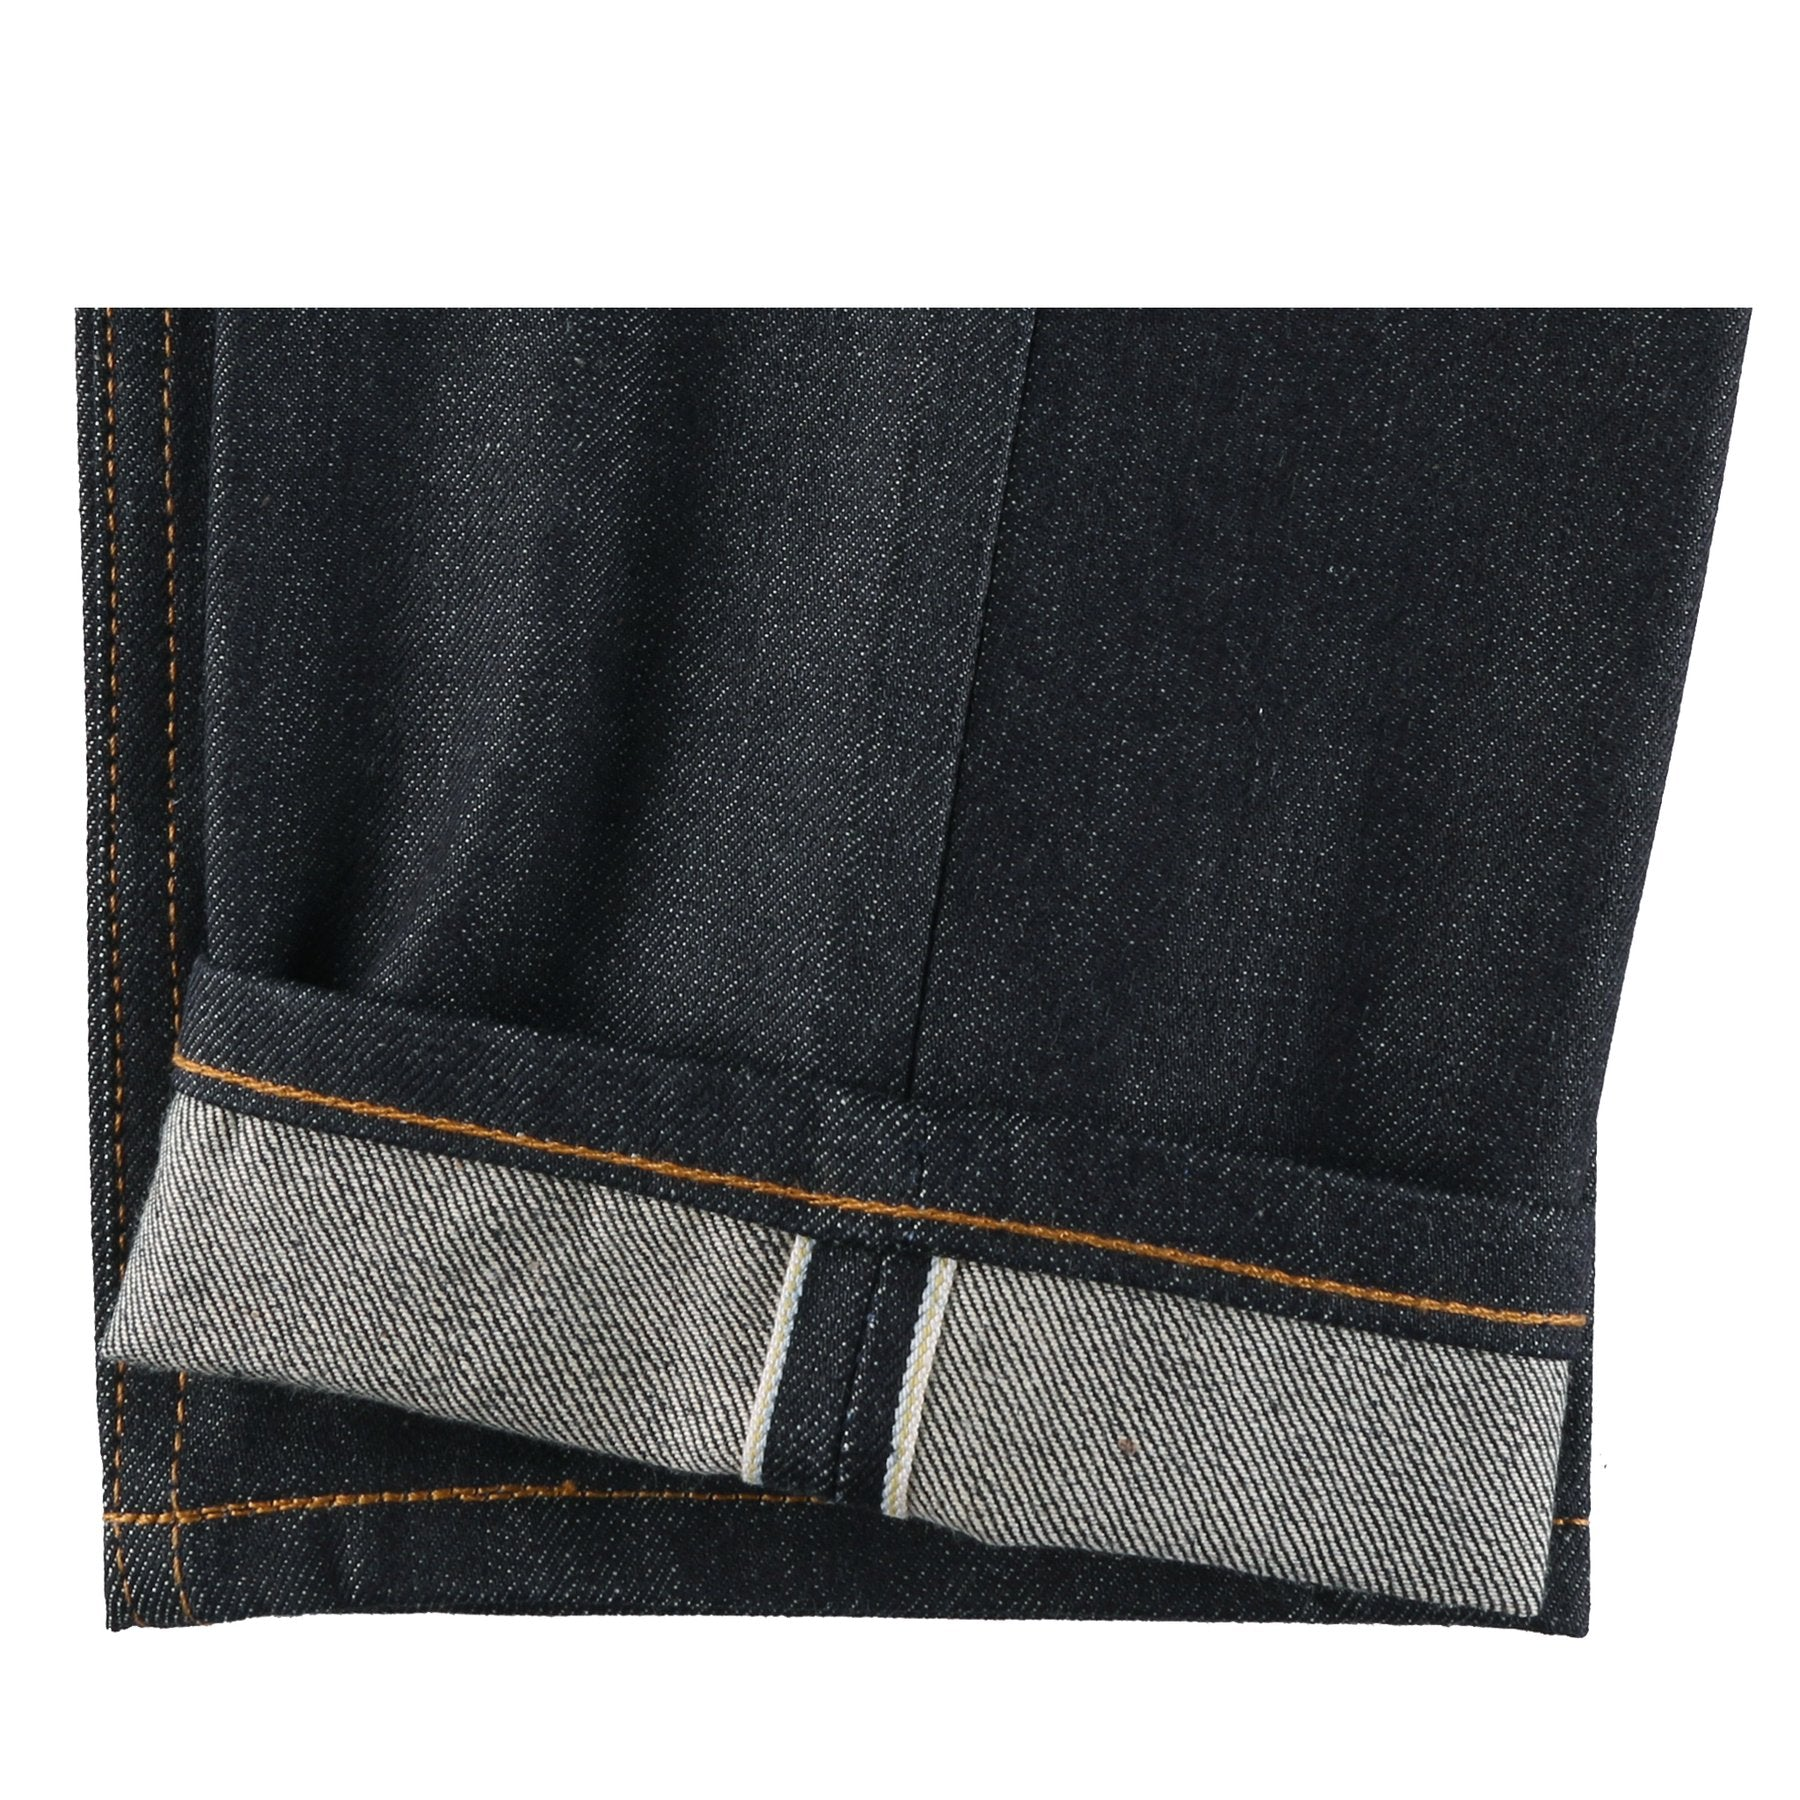 N&F - Guardian Selvedge Indigo Kevlar Denim - The Populess Company